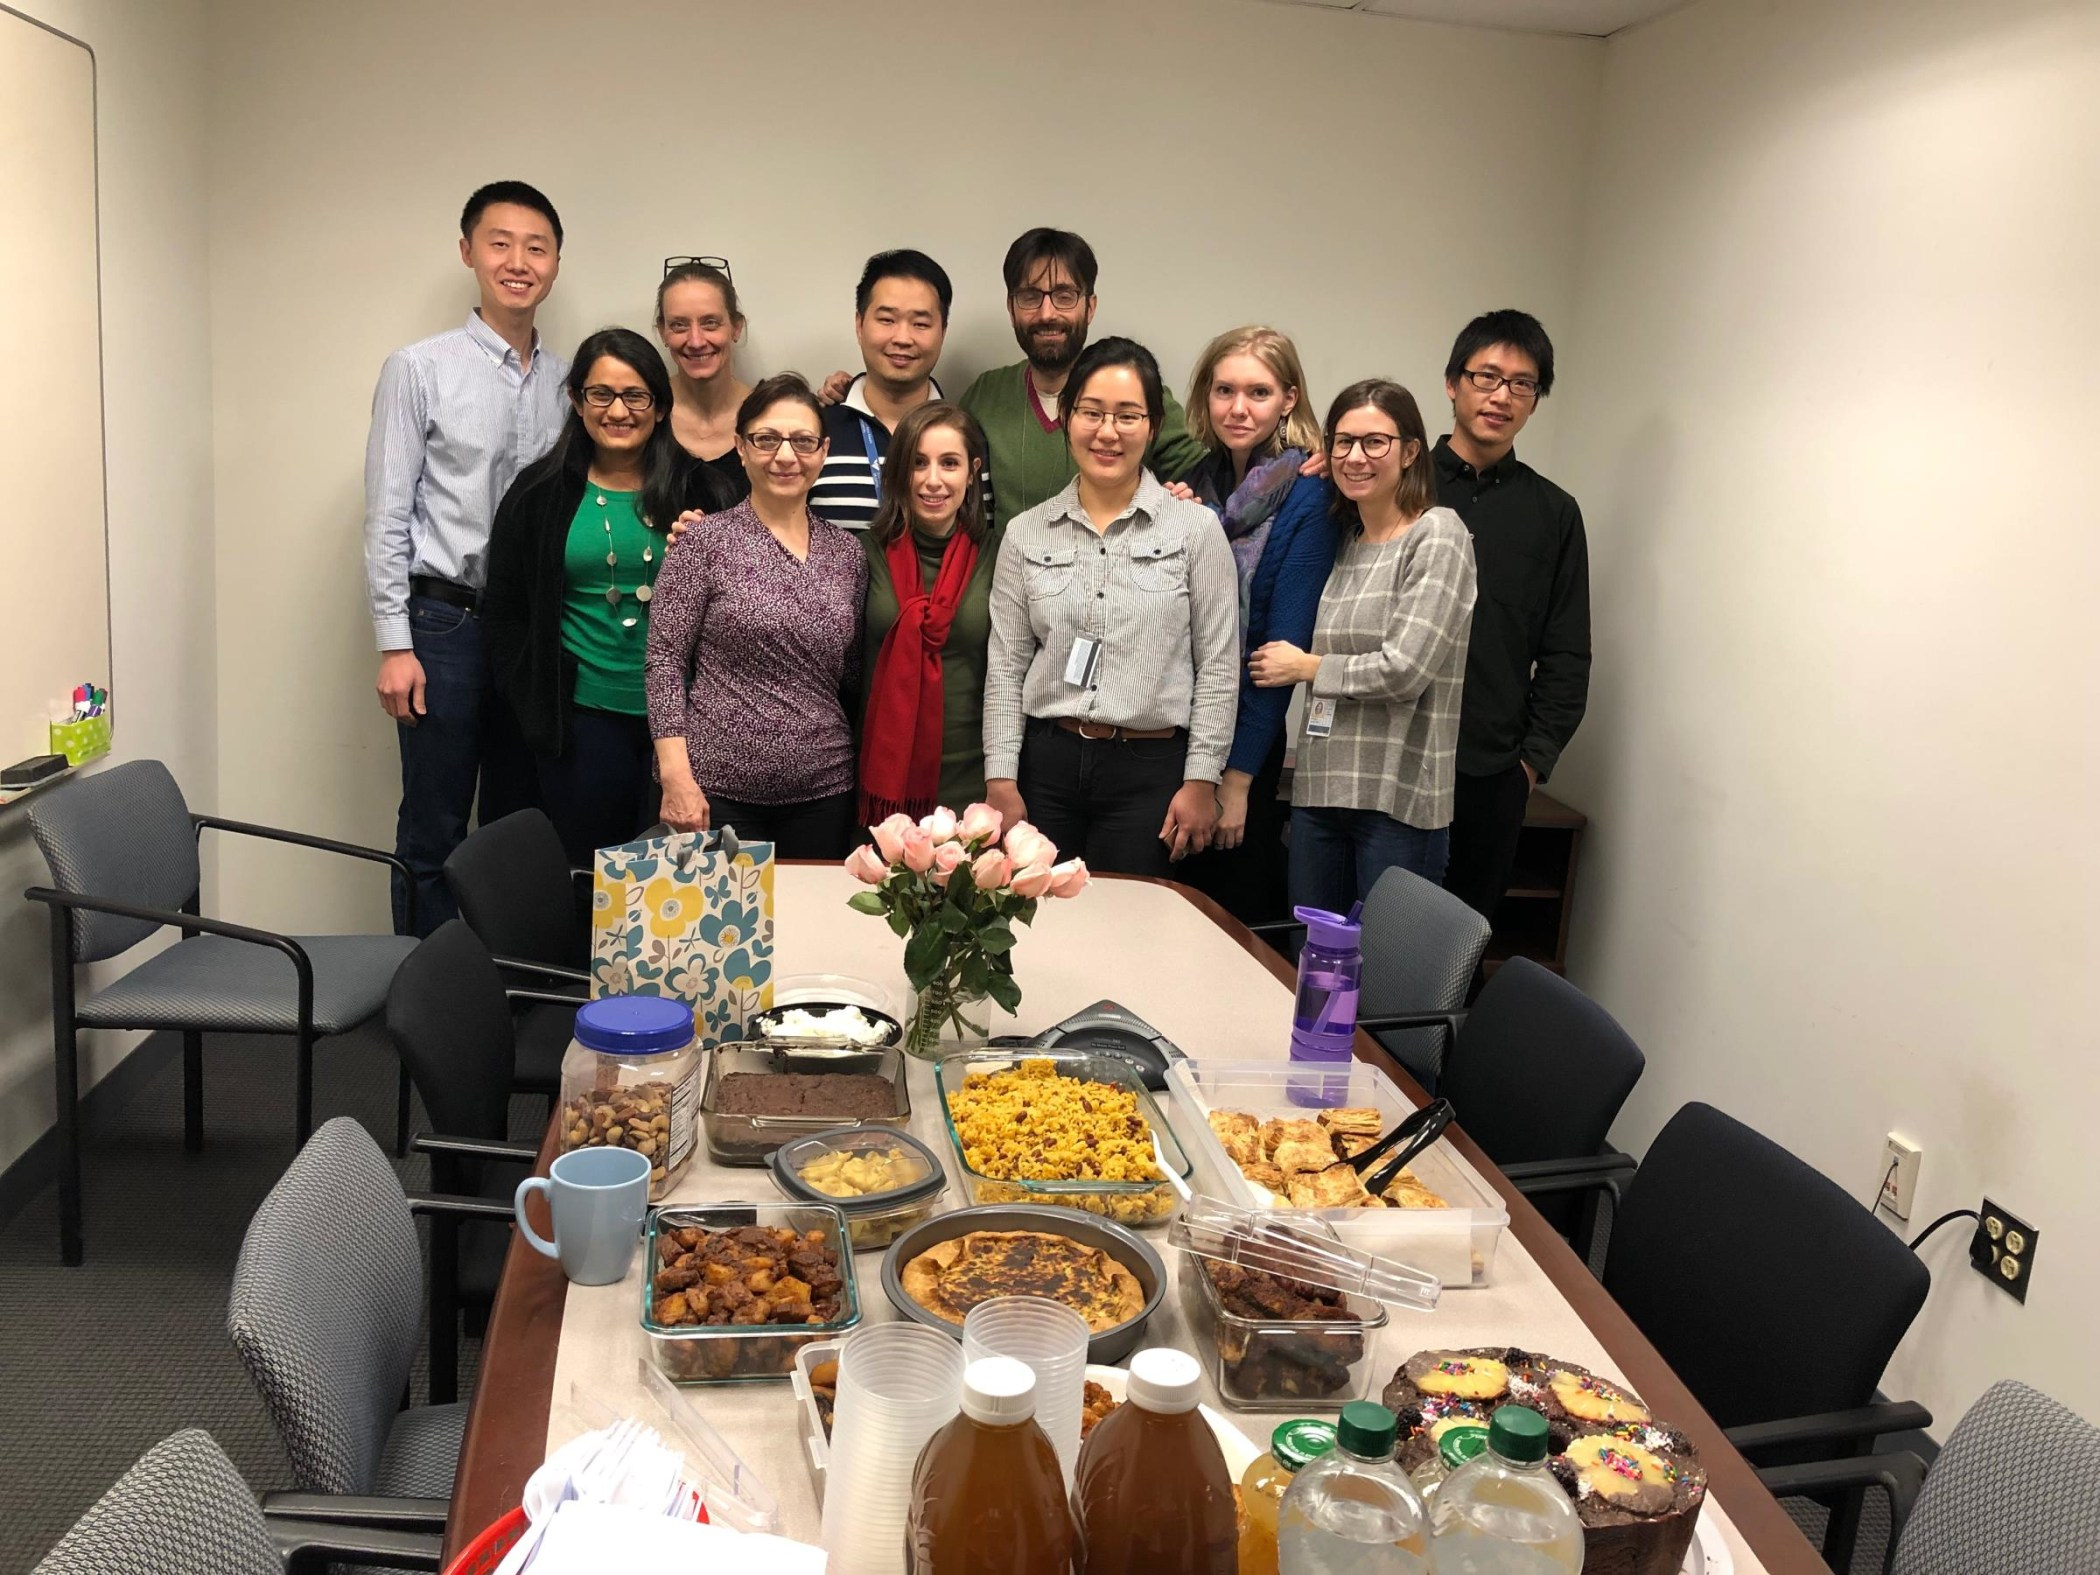 Xiaoying's goodbye January 2019